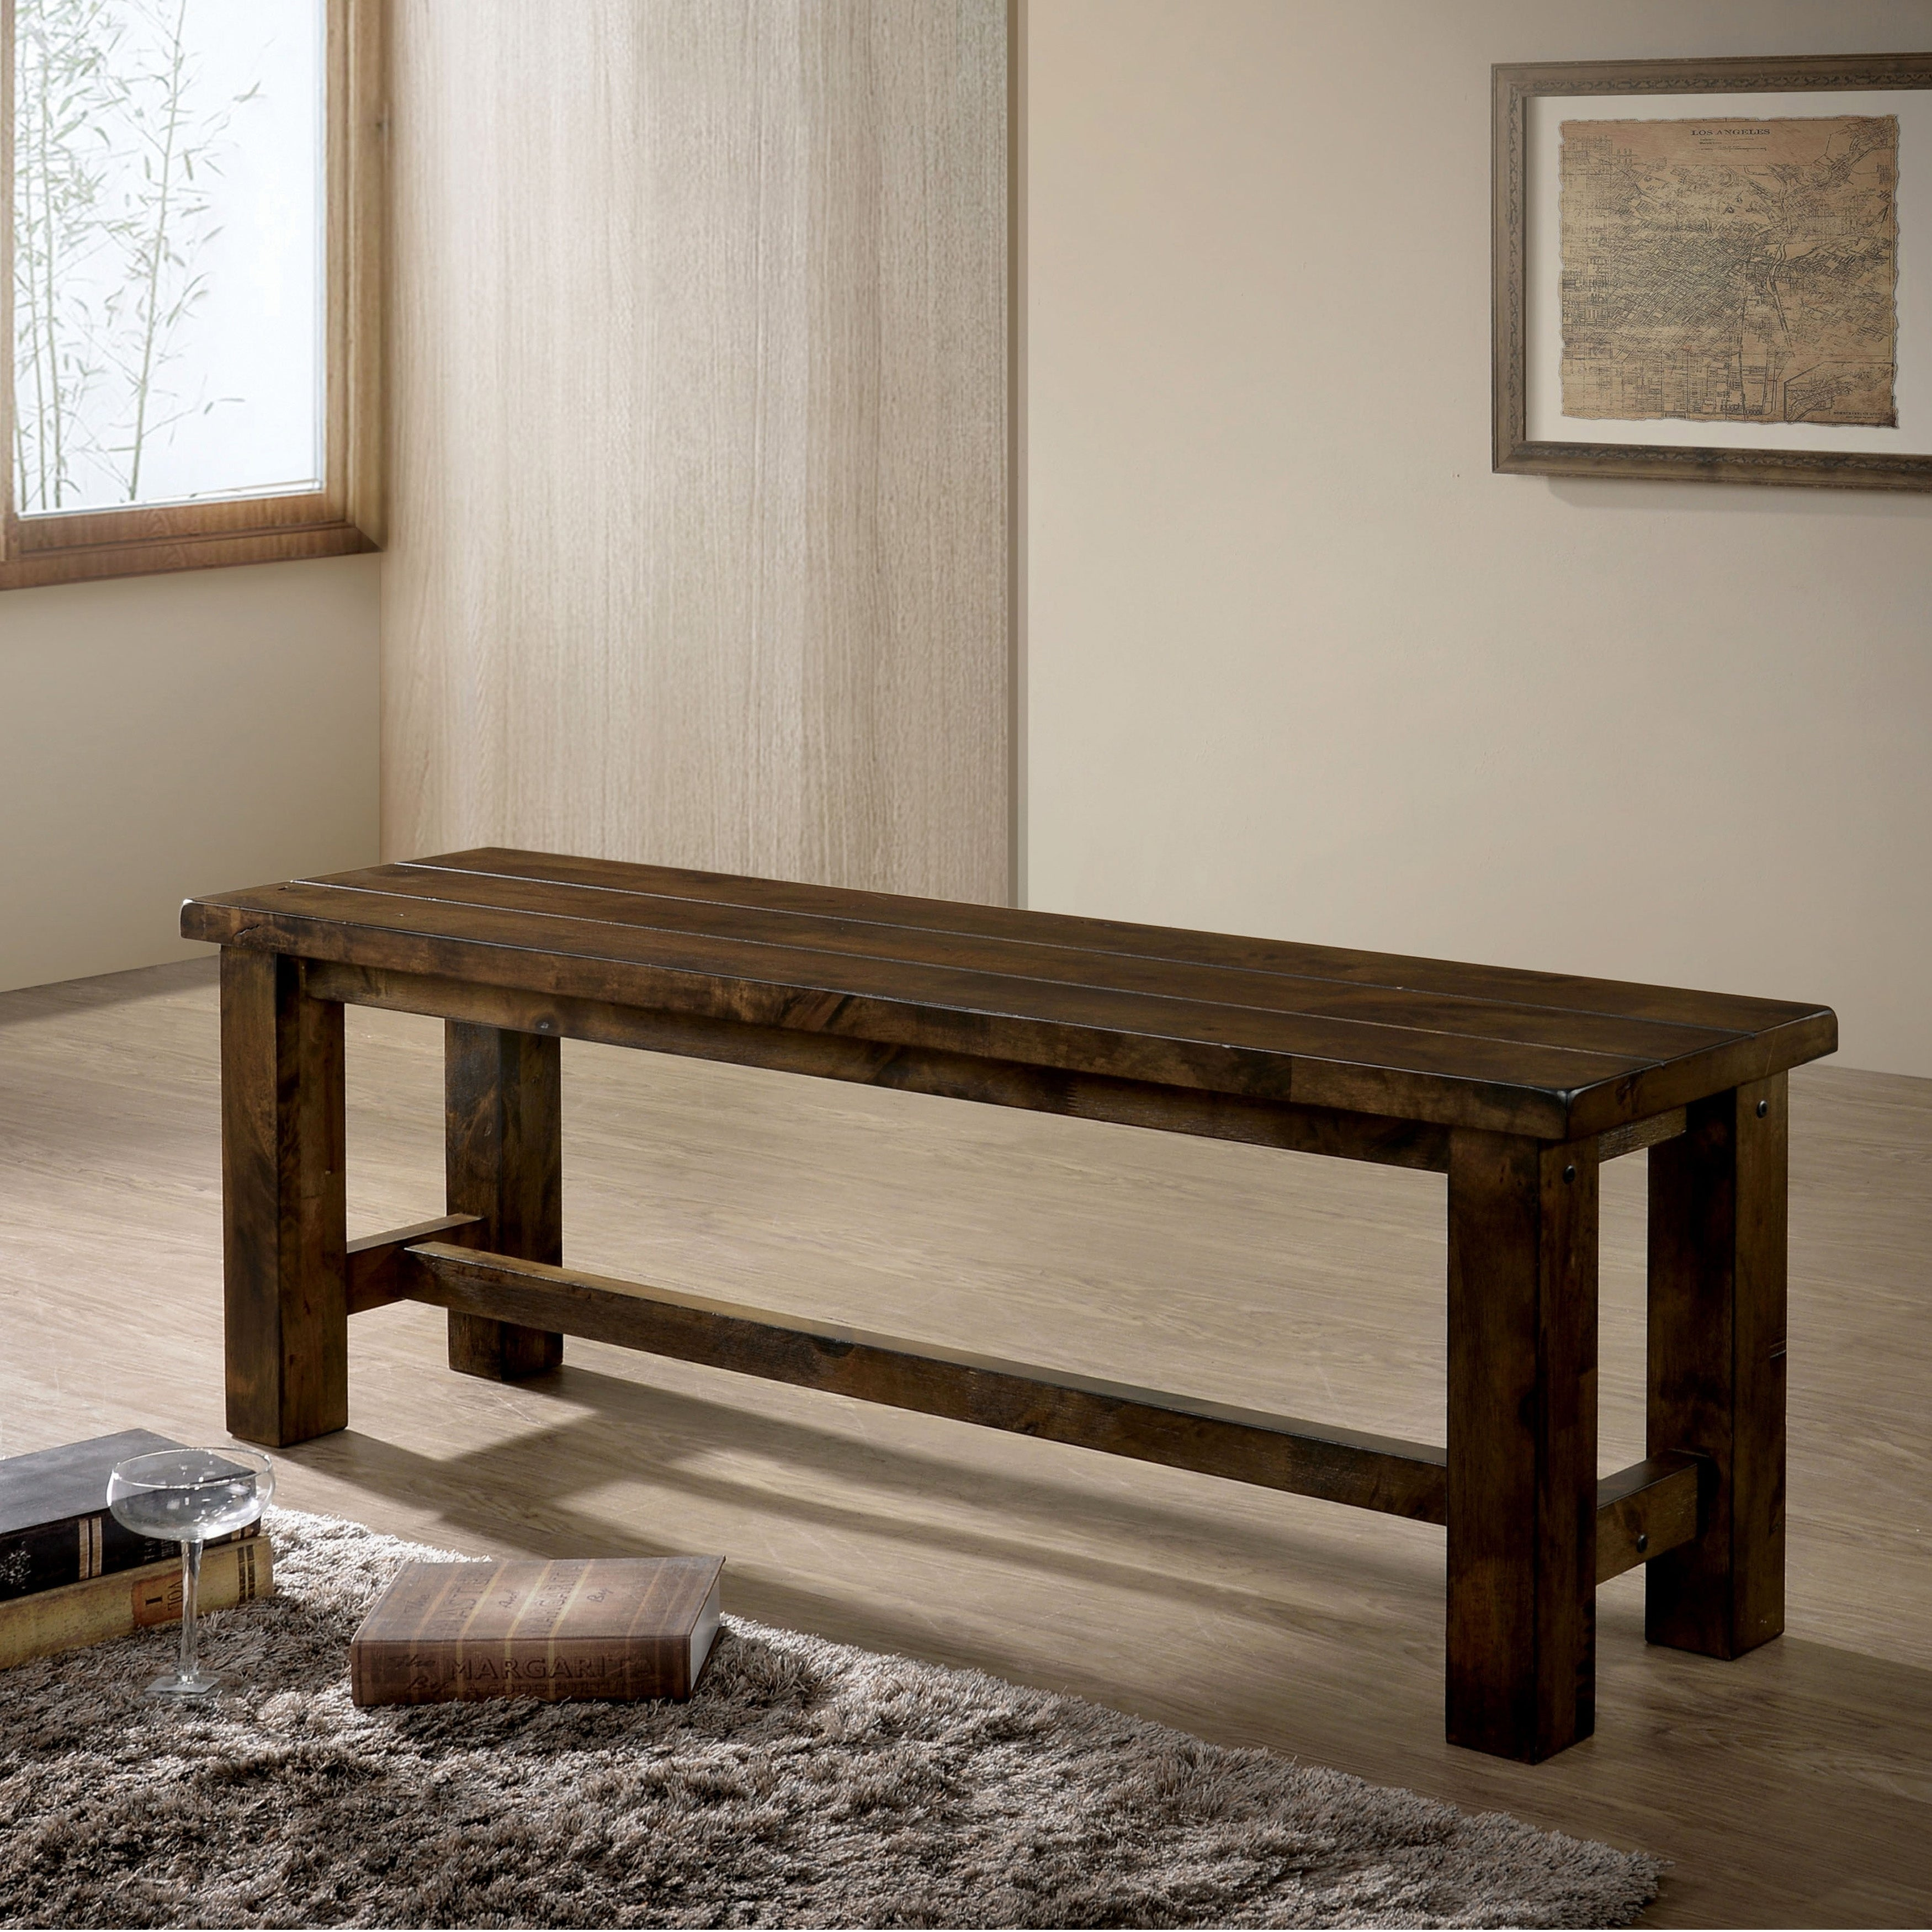 Pleasing Oakhurst Rustic 52 Inch Rustic Oak Dining Bench By Foa Theyellowbook Wood Chair Design Ideas Theyellowbookinfo